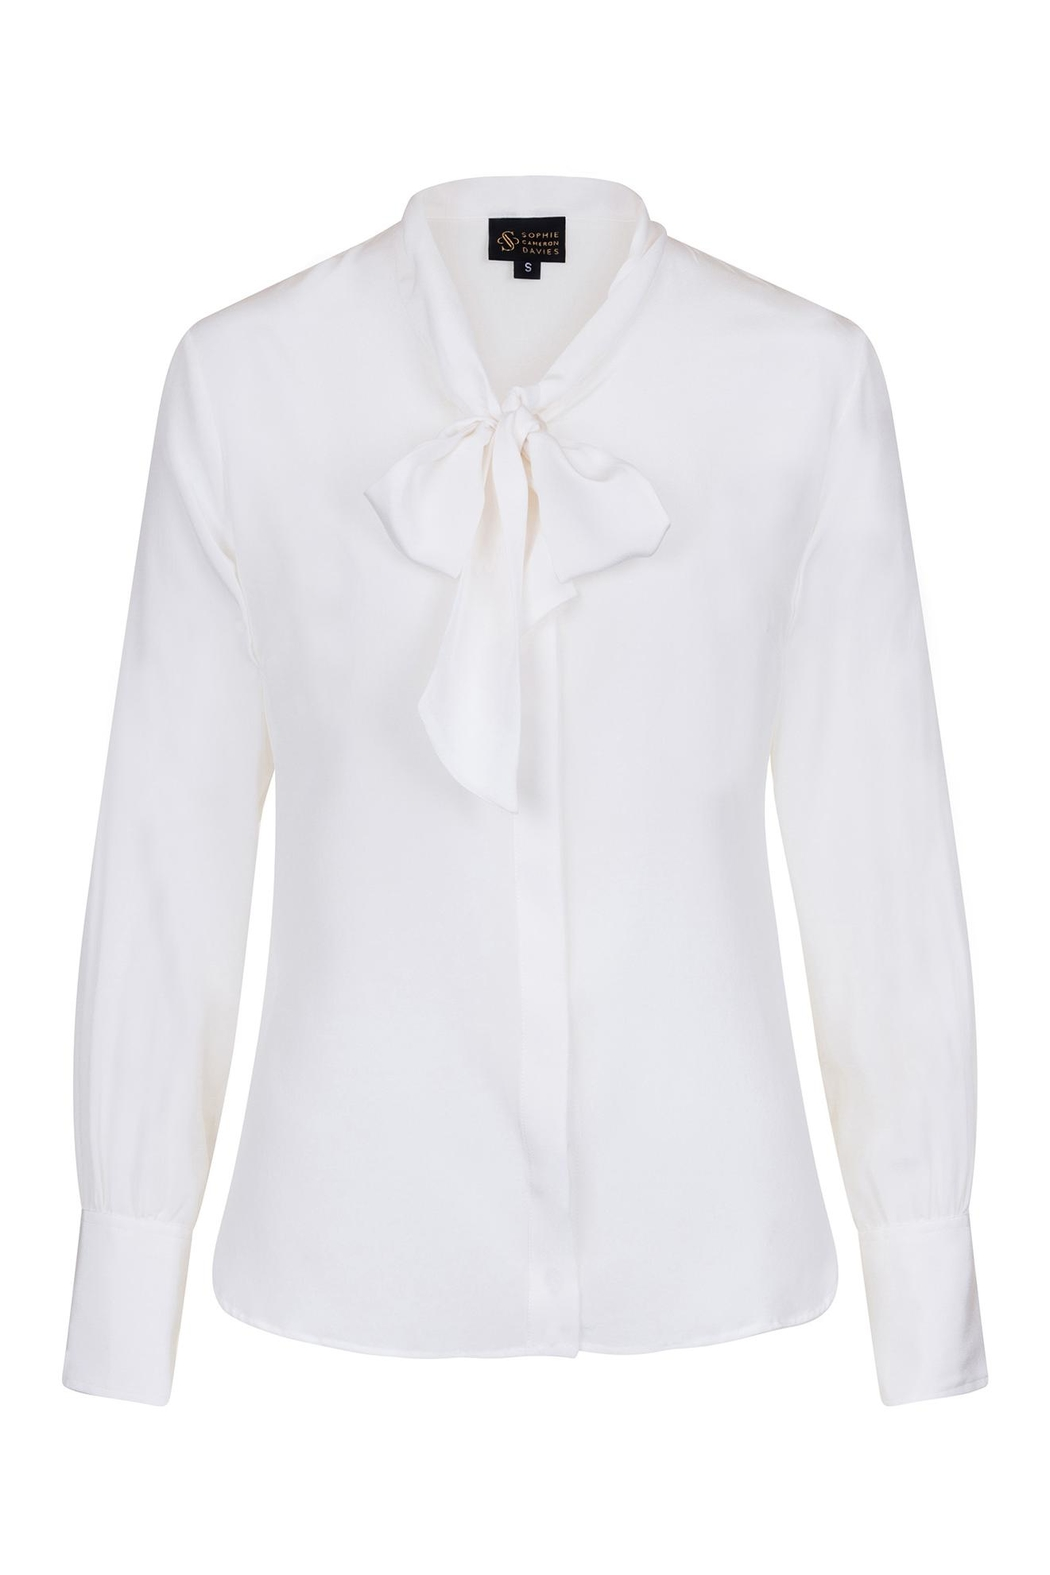 Sophie Cameron Davies Silk Bow Blouse - Front Full Image